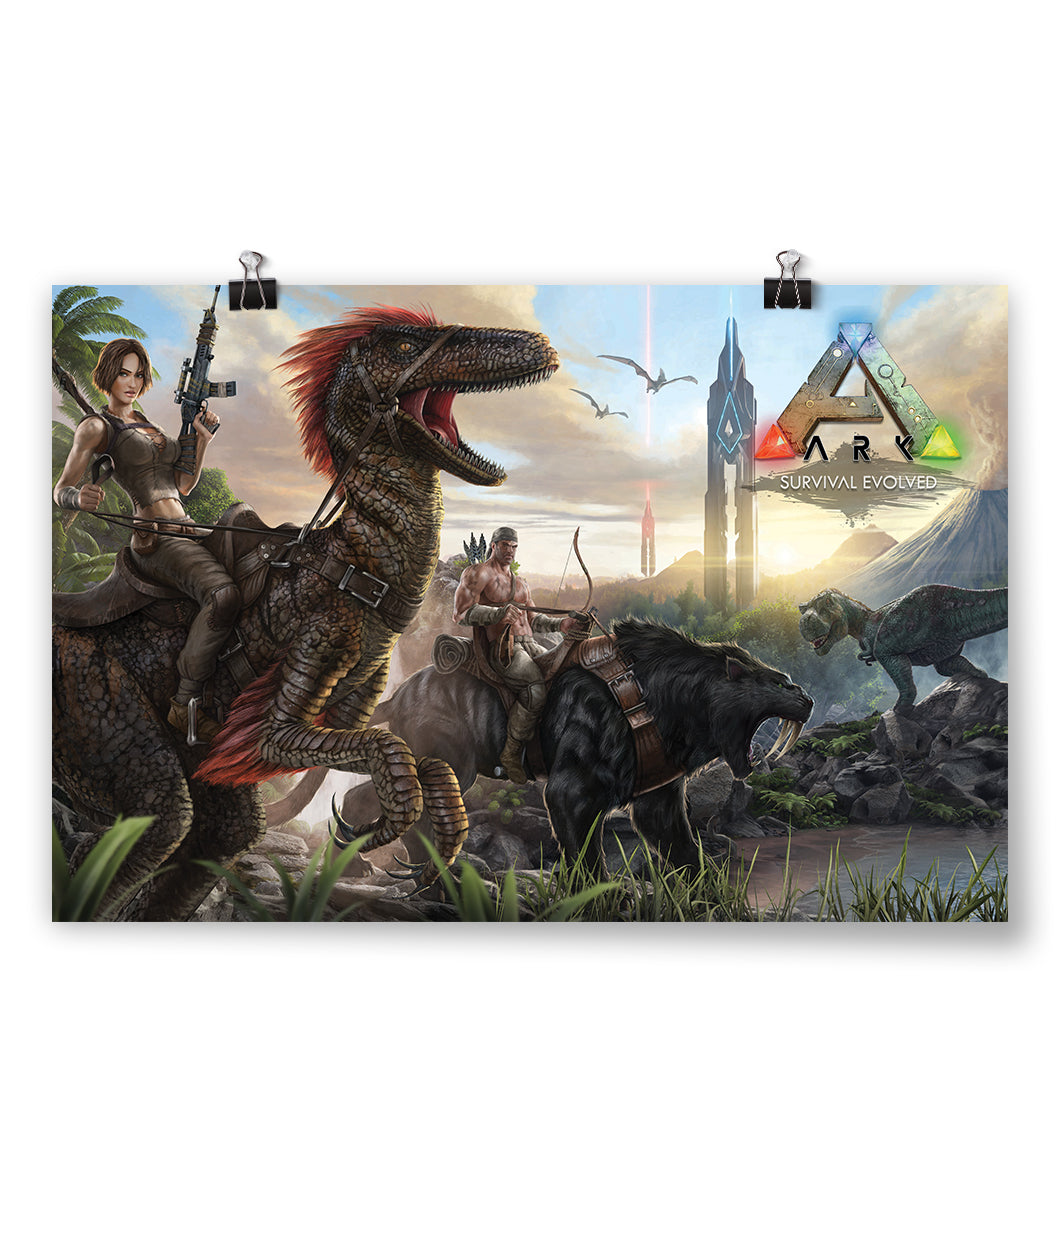 ARK: Survival Evolved Poster